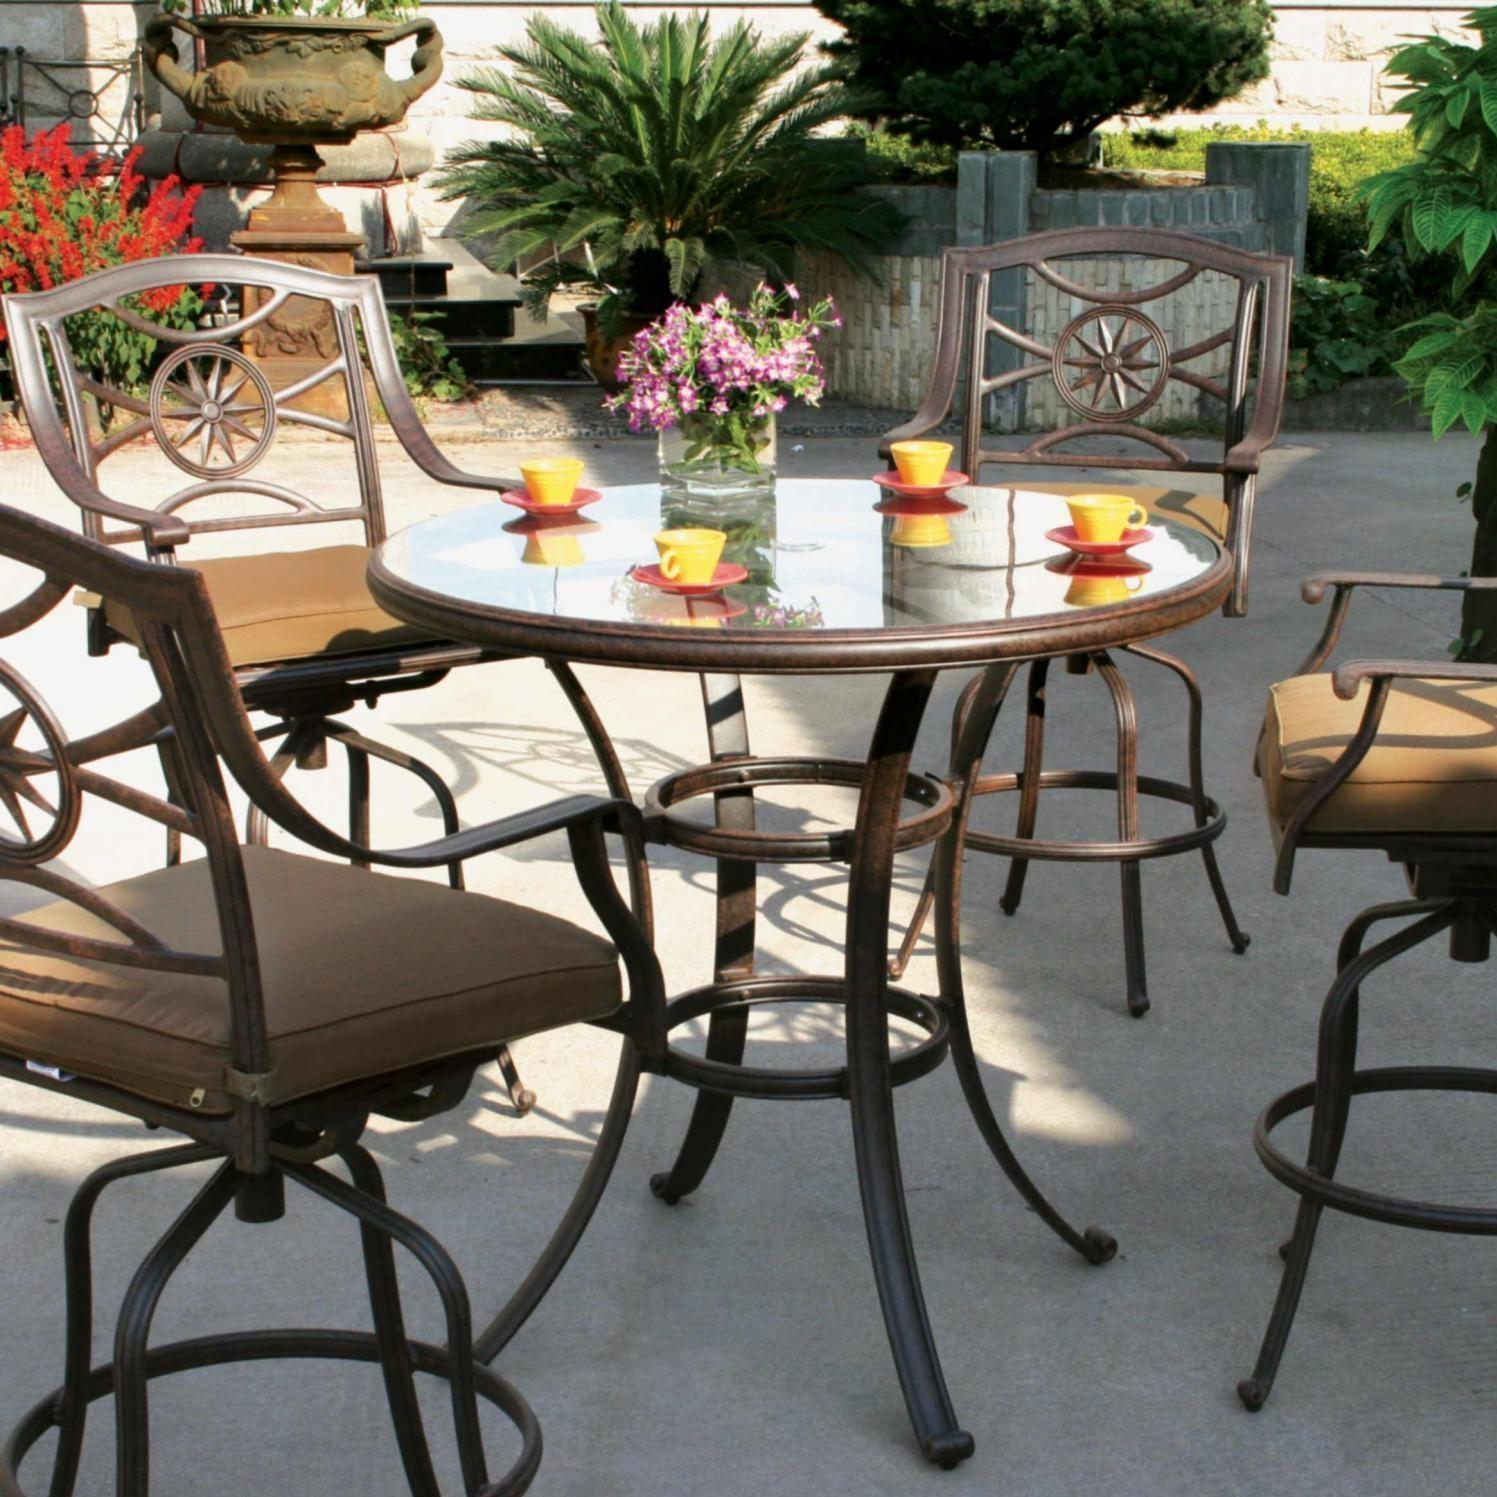 Darlee Ten Star 4 Person Patio Bar Set   Antique Bronze